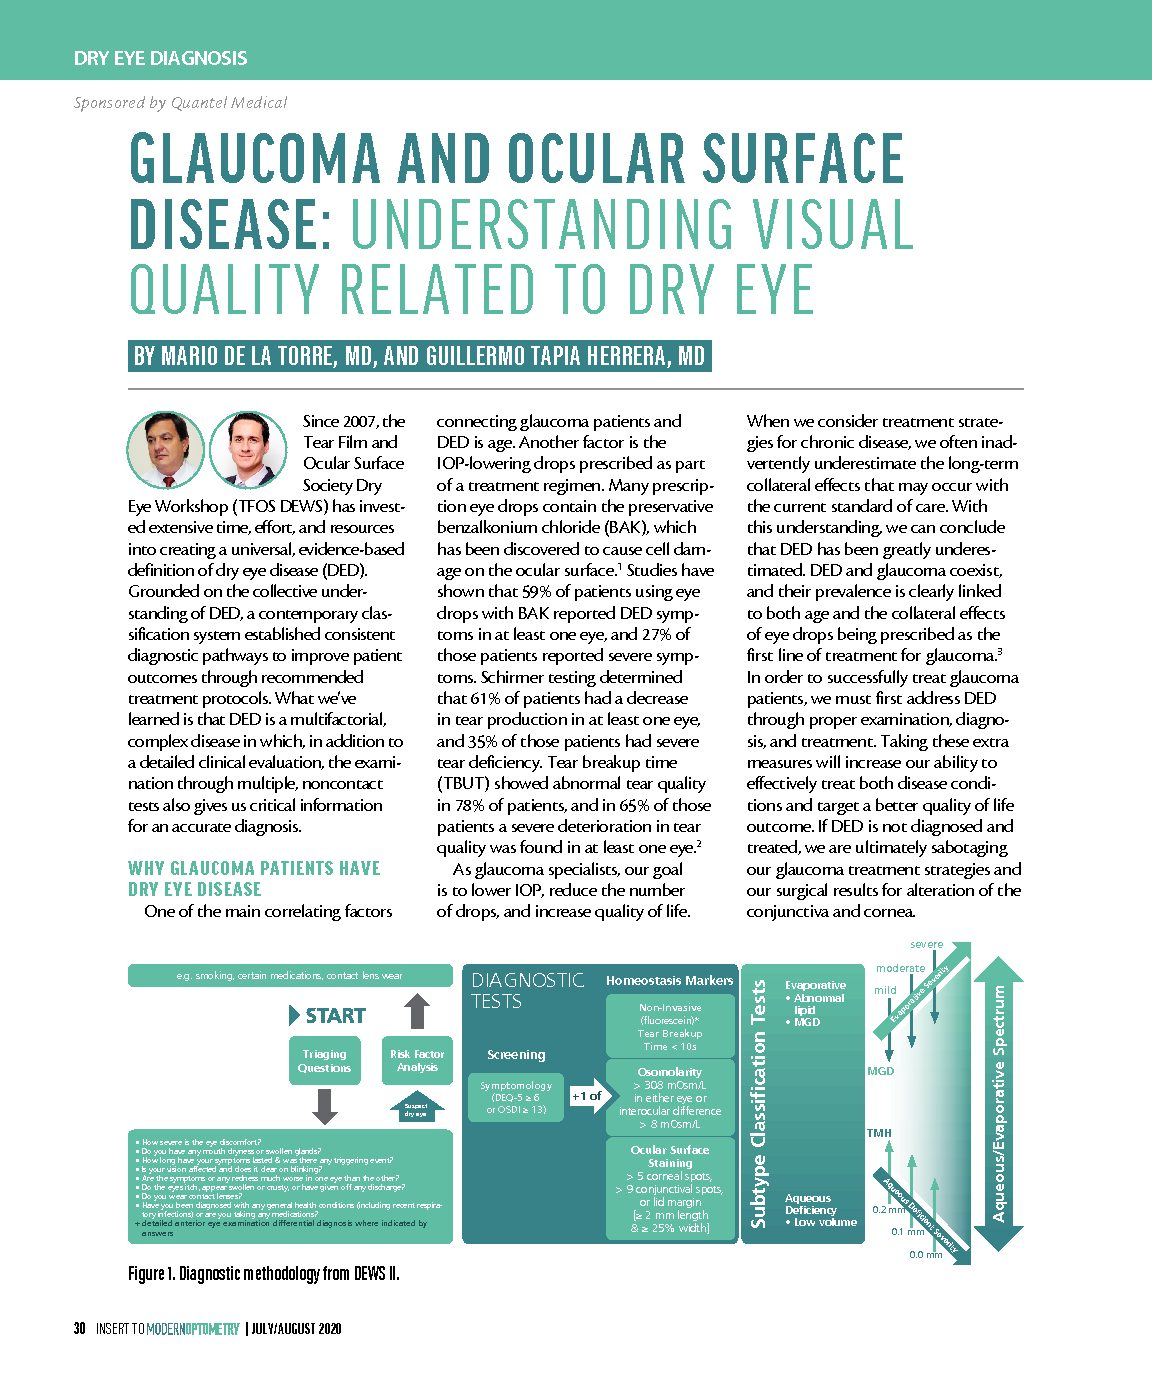 Glaucoma and Ocular Surface Disease